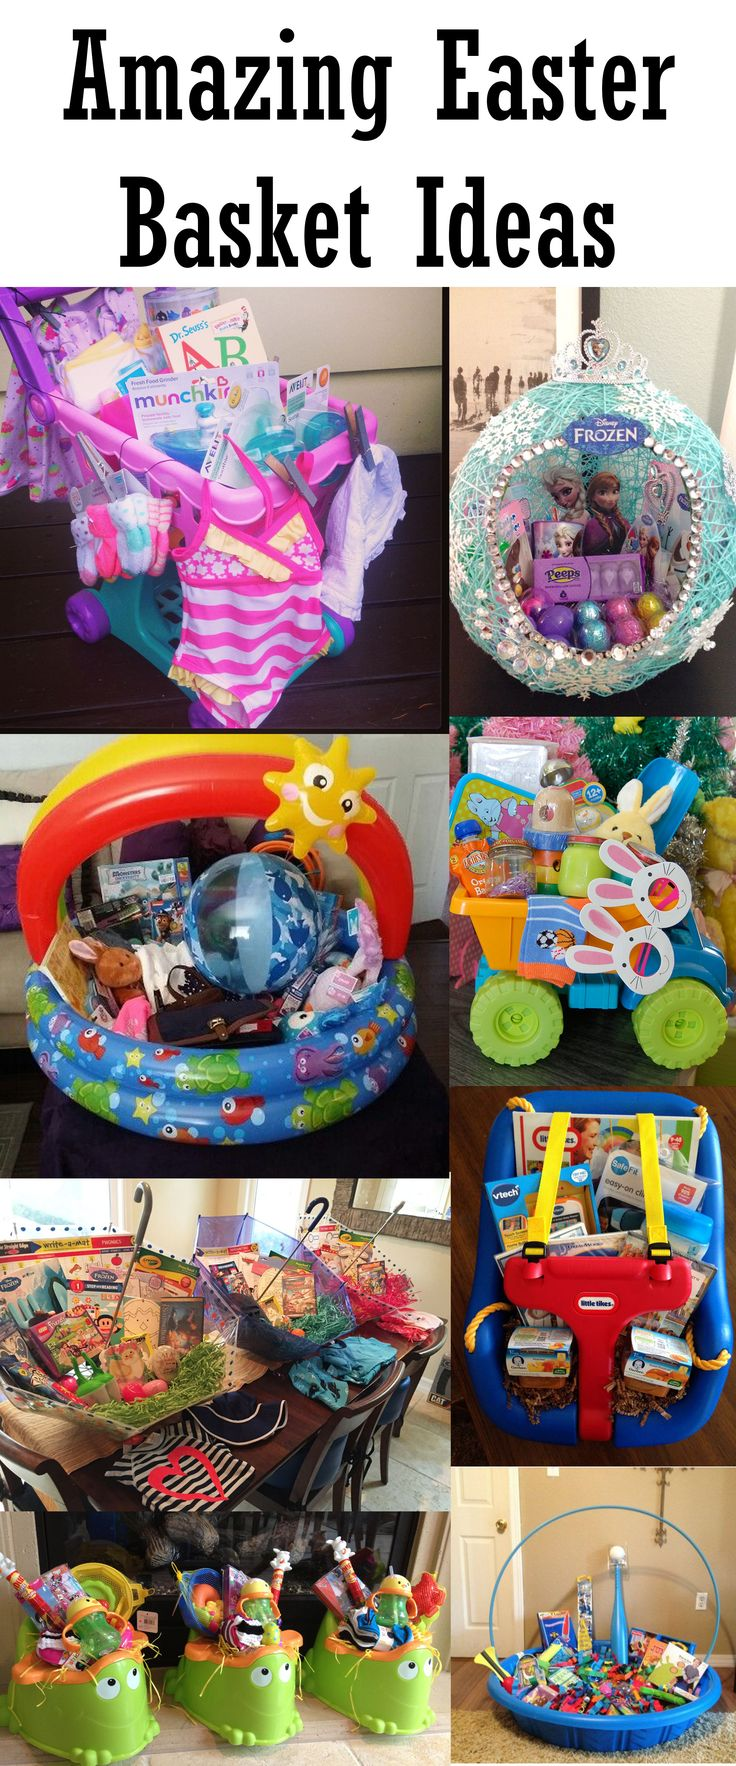 25 unique kids gift baskets ideas on pinterest movie basket amazing easter basket ideas 1 negle Image collections